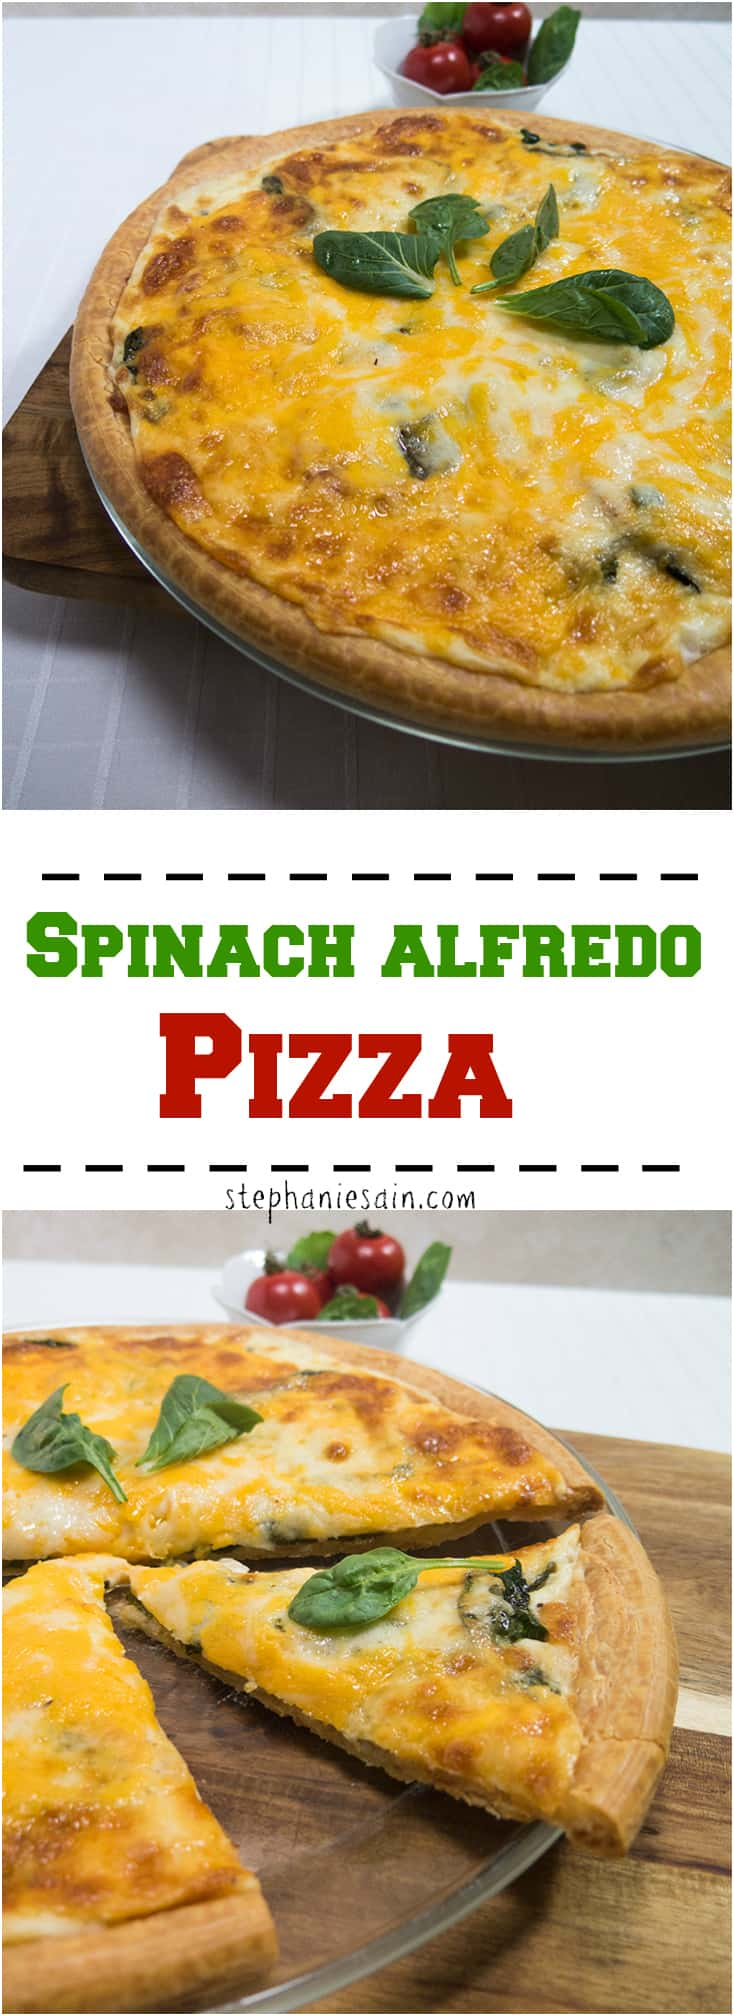 Spinach Alfredo Pizza is a tasty pizza topped with a creamy sauce, spinach, tomatoes and cheese. Vegetarian and Gluten Free.